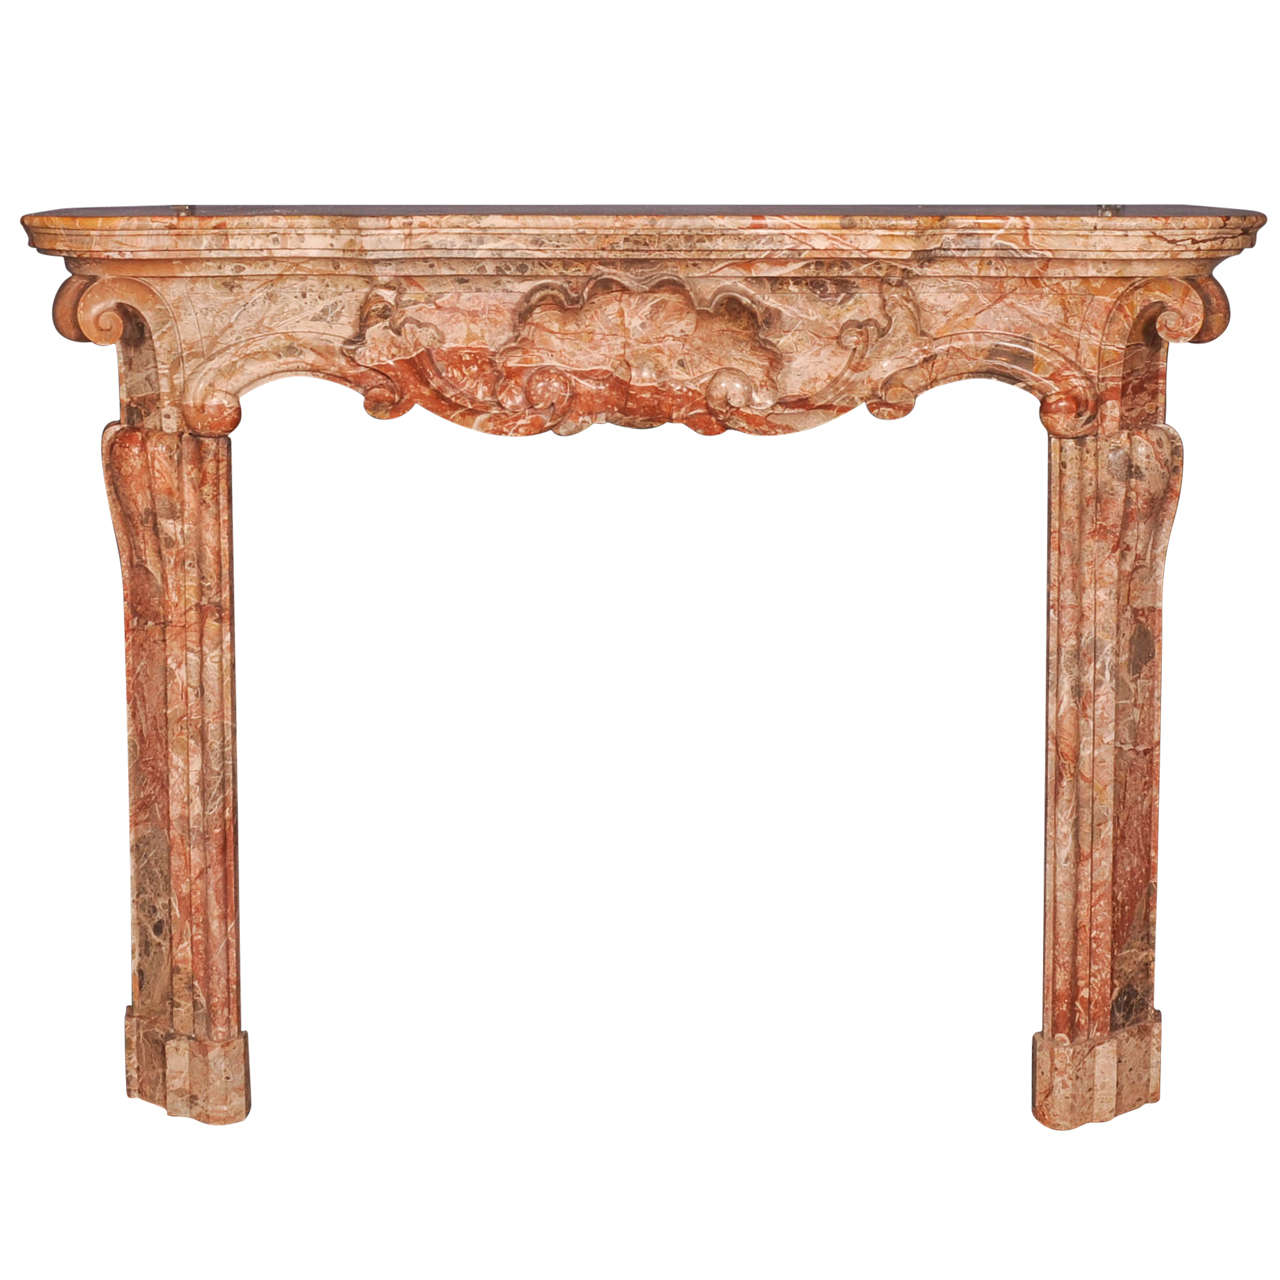 impressive 18th century italian baroque sarrancolin marble antique oak fireplace mantel with mirror antique solid oak fireplace surround